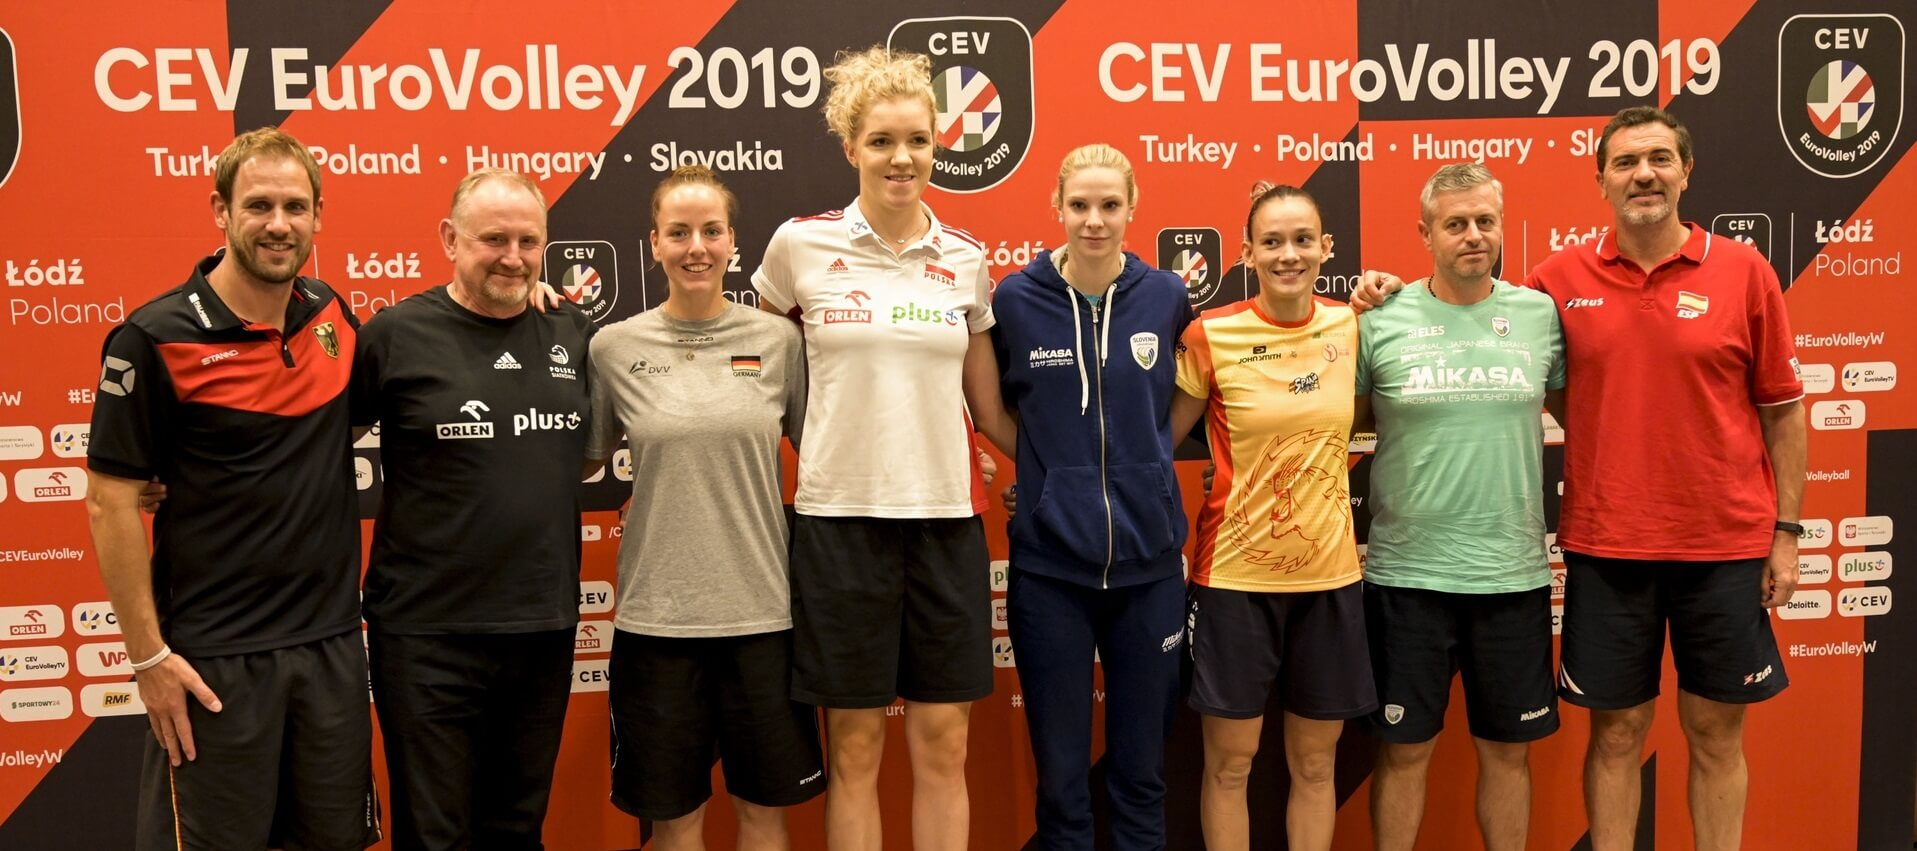 Germany, Slovenia, Poland and Spain ready for the 8th Finals